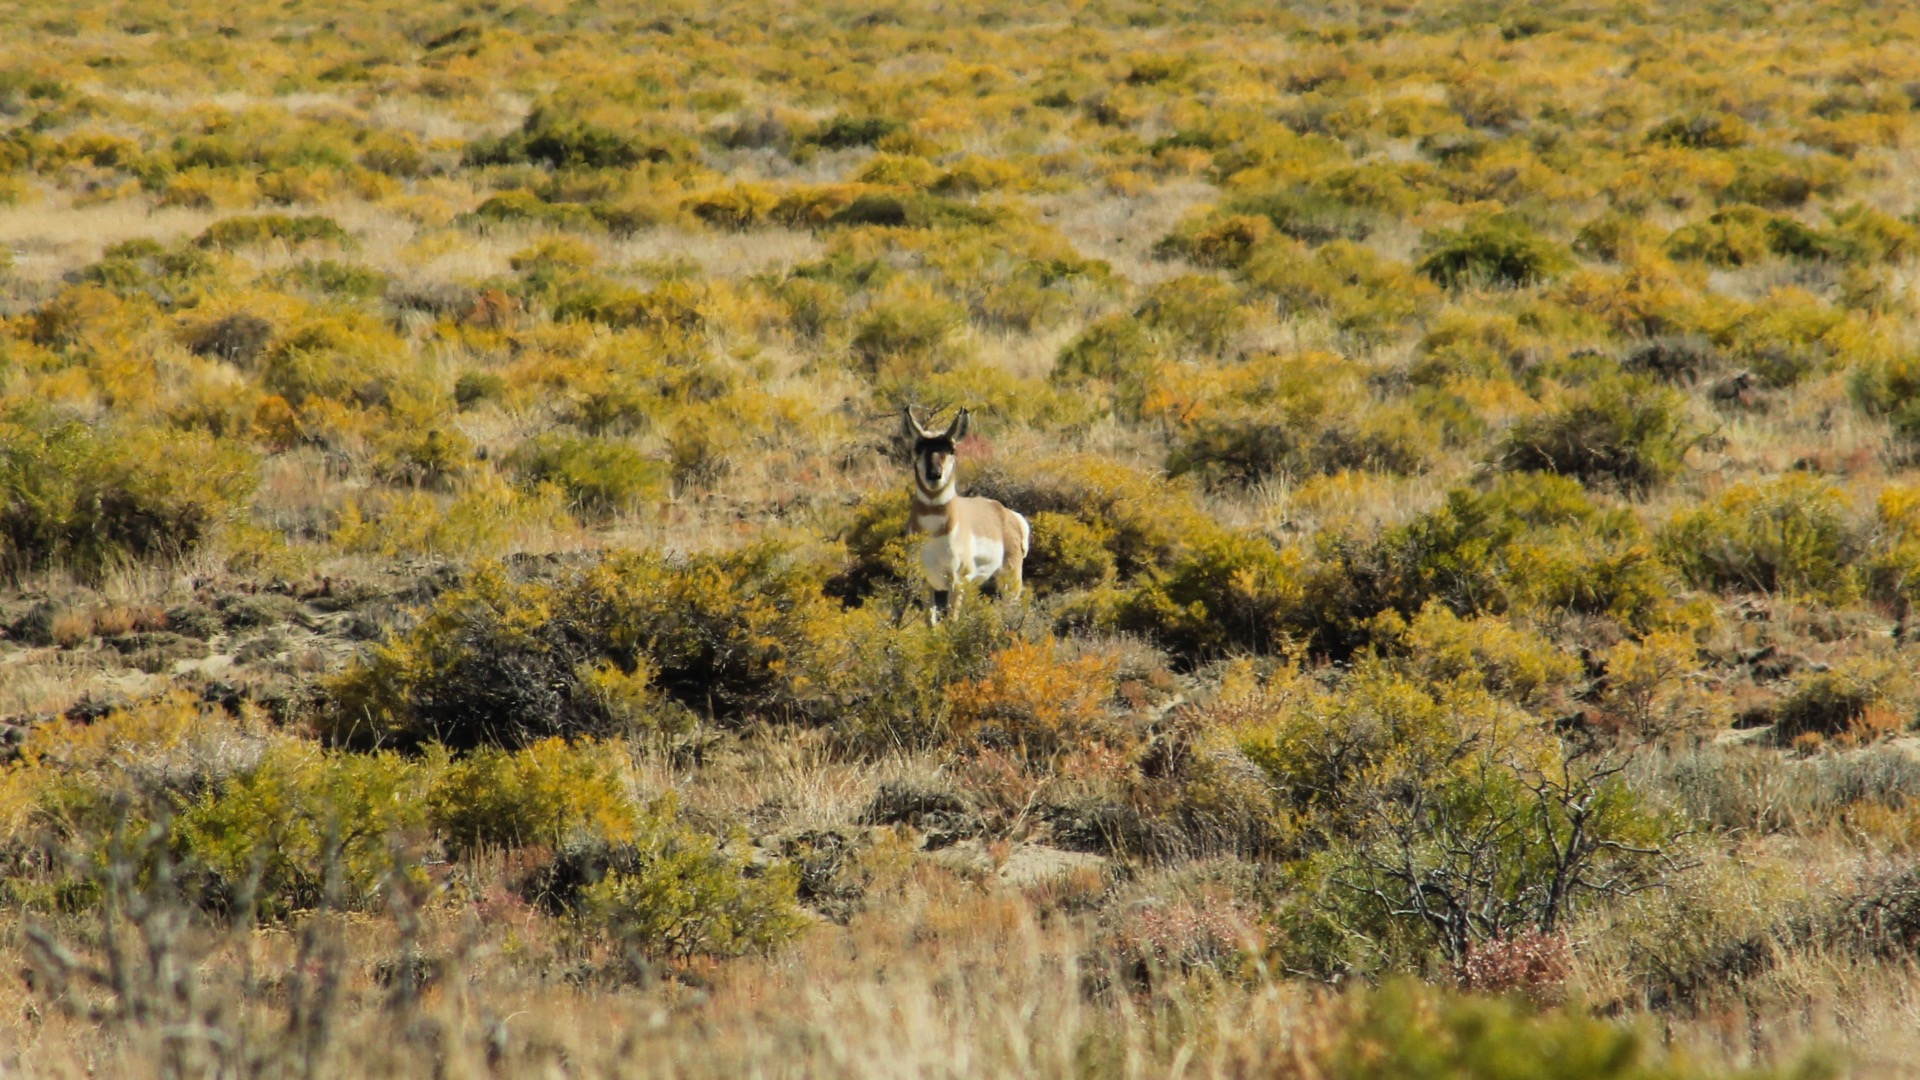 More Antelope on the property